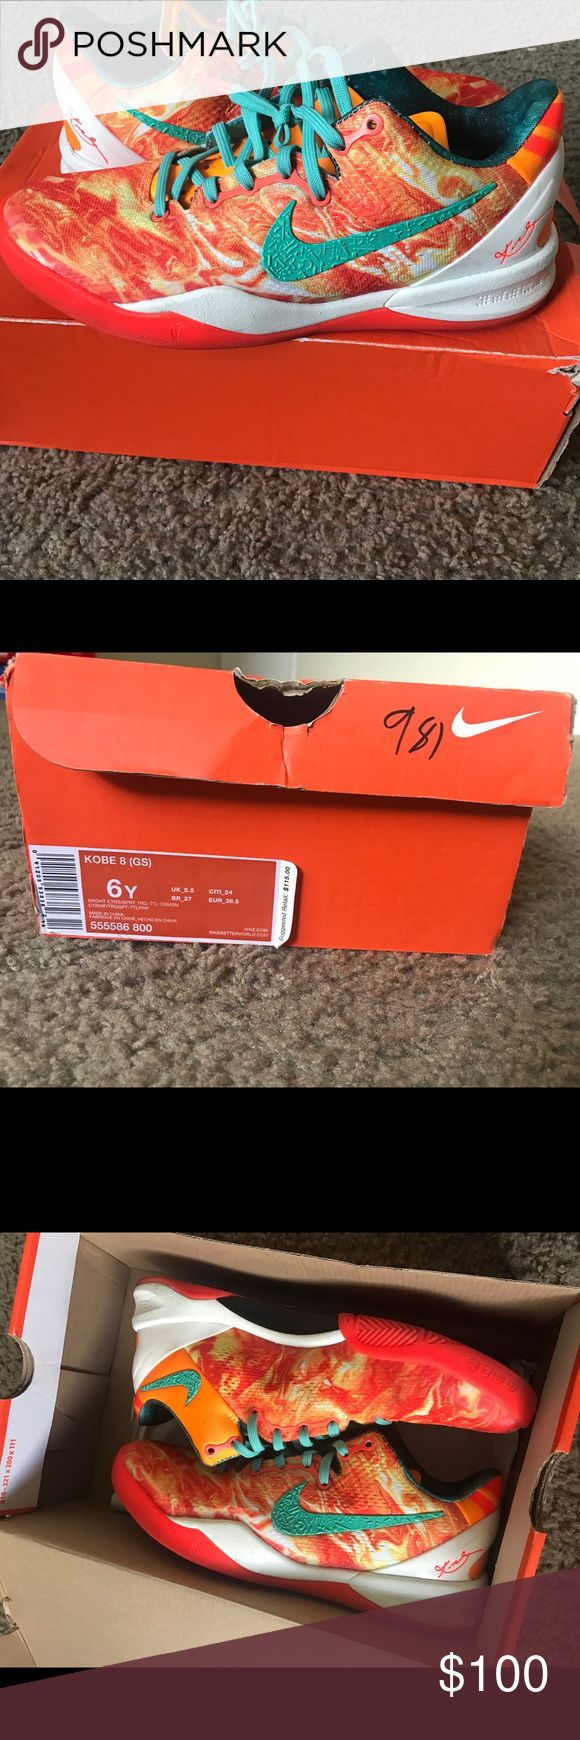 """Nike Kobe All Star 8 """"Area 72"""" Nike Kobe All Star 8 """"Area 72"""". Size 6y, Women's 8. Runs big. Great condition. Nike Shoes Sneakers"""